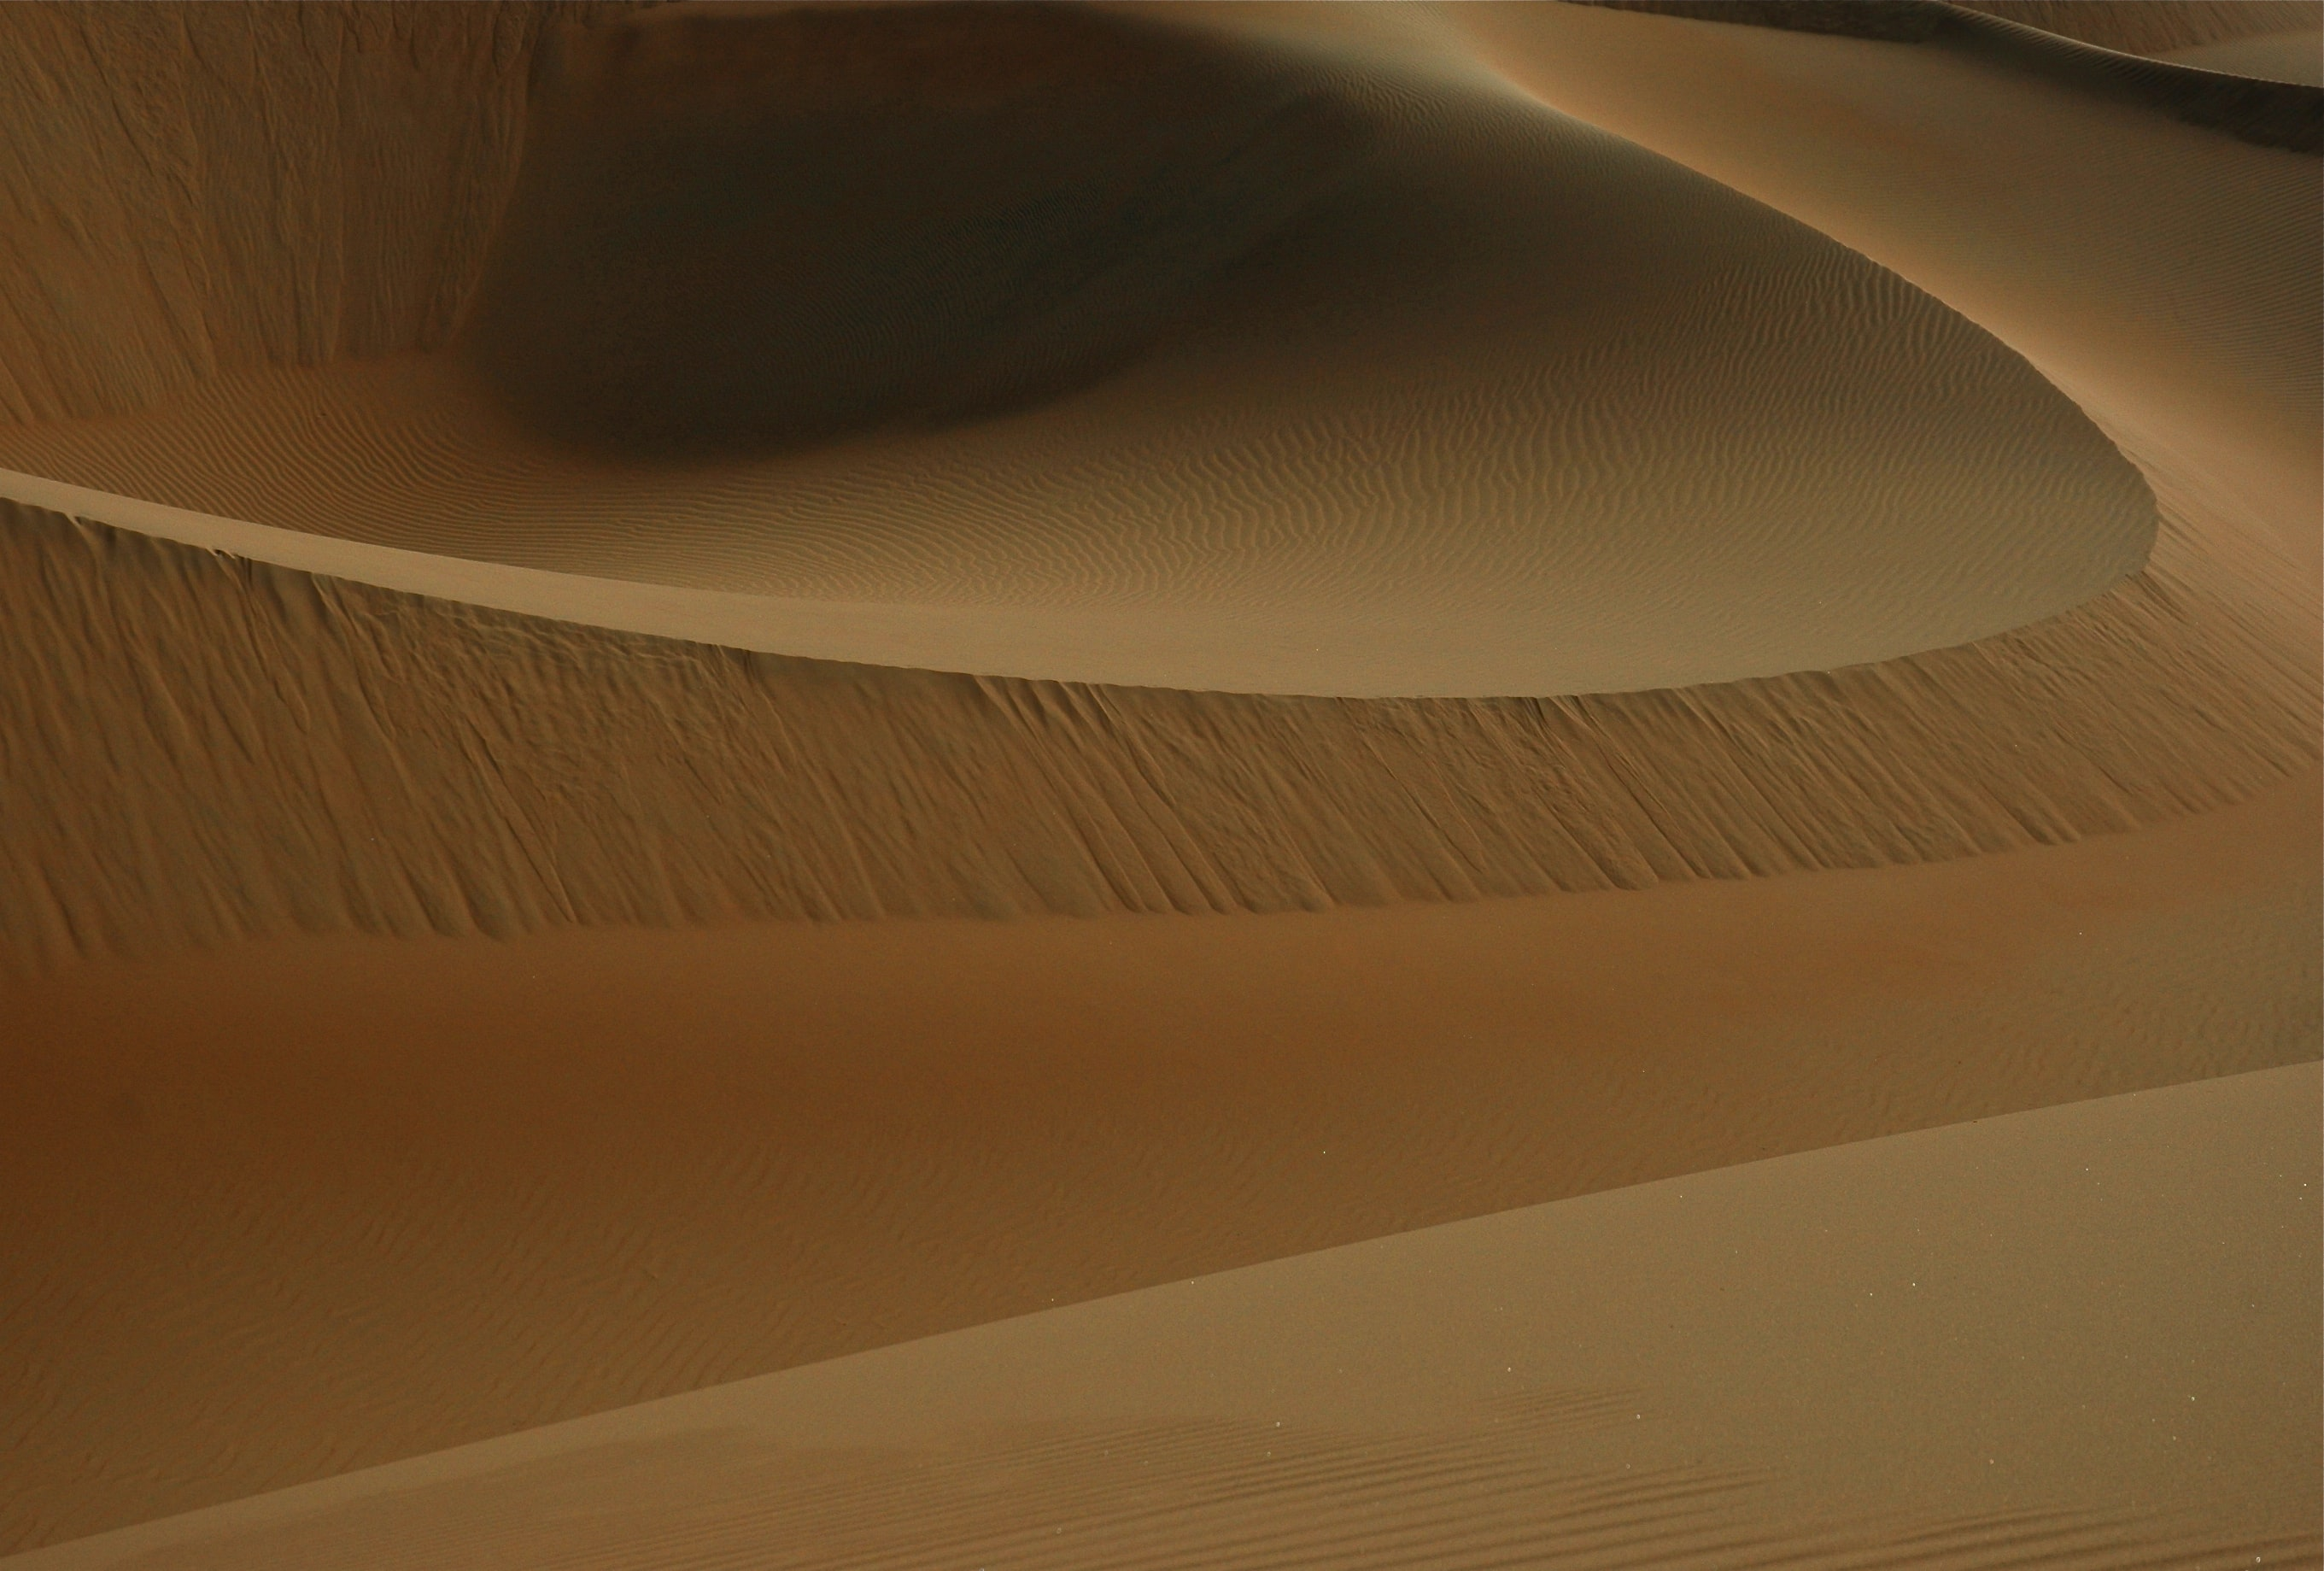 Artistic sand dunes in the desert of United Arab Emirates